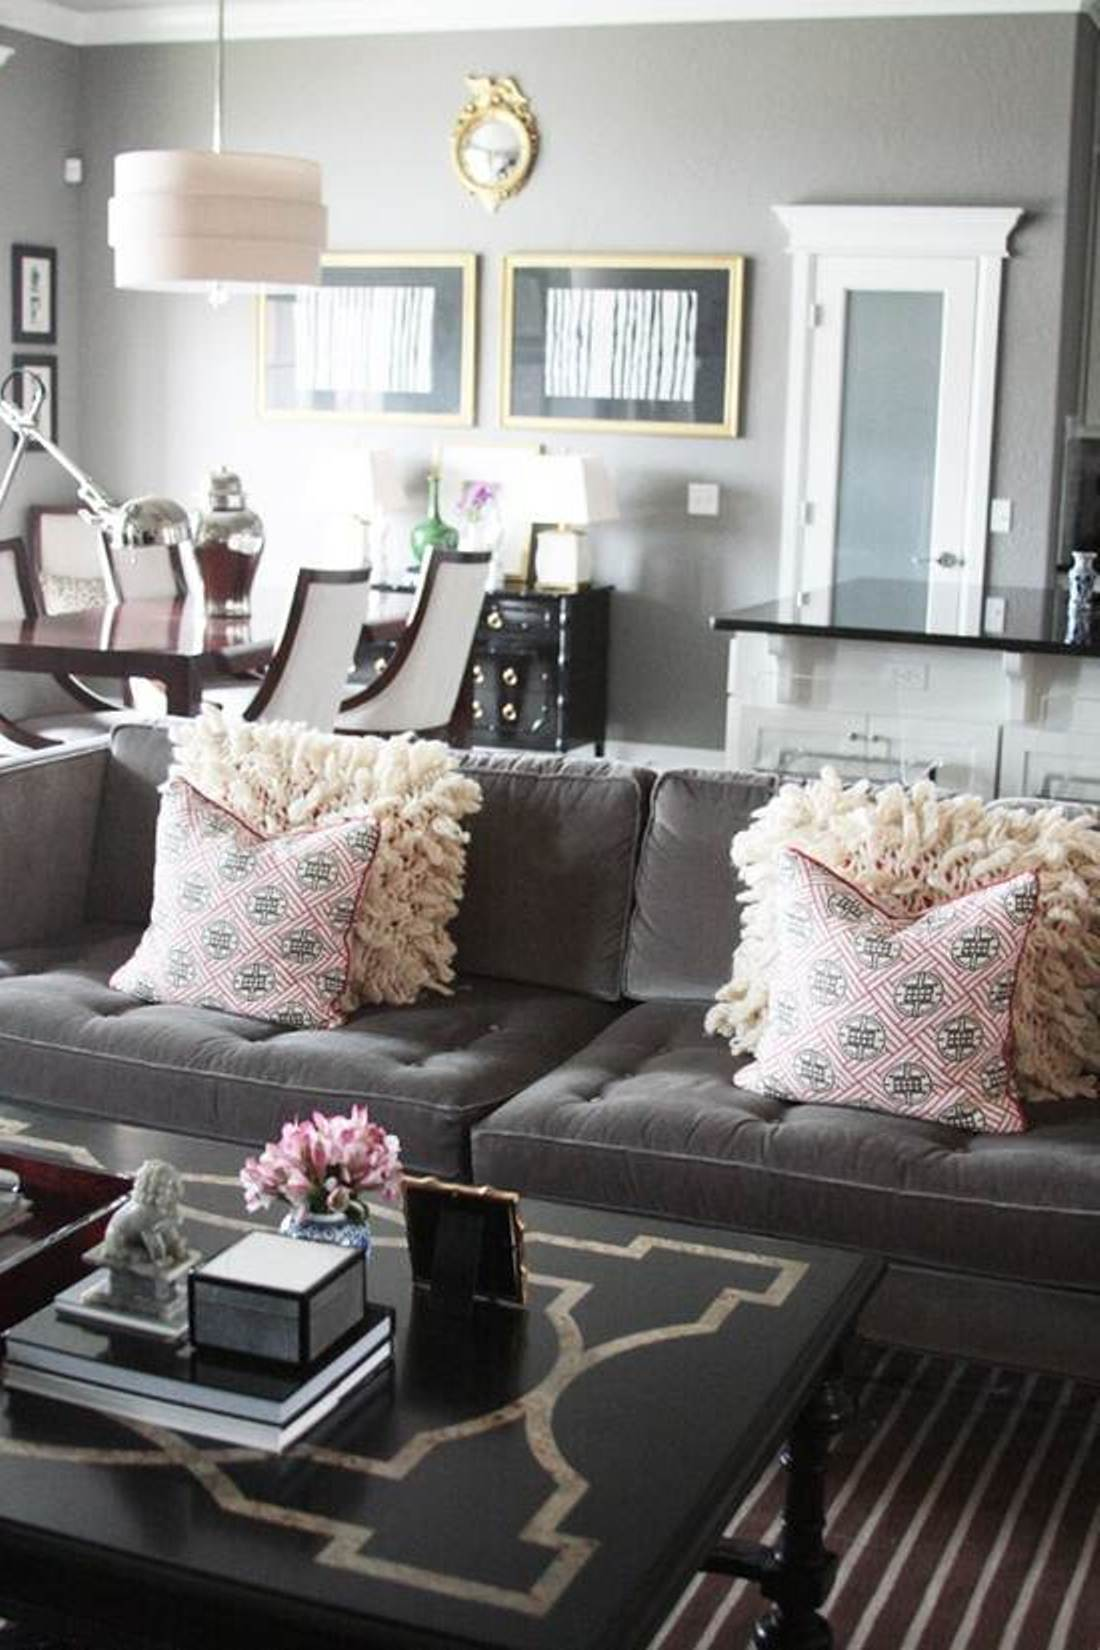 Elegant Pink Sofa Pillows For Living Room (View 2 of 10)